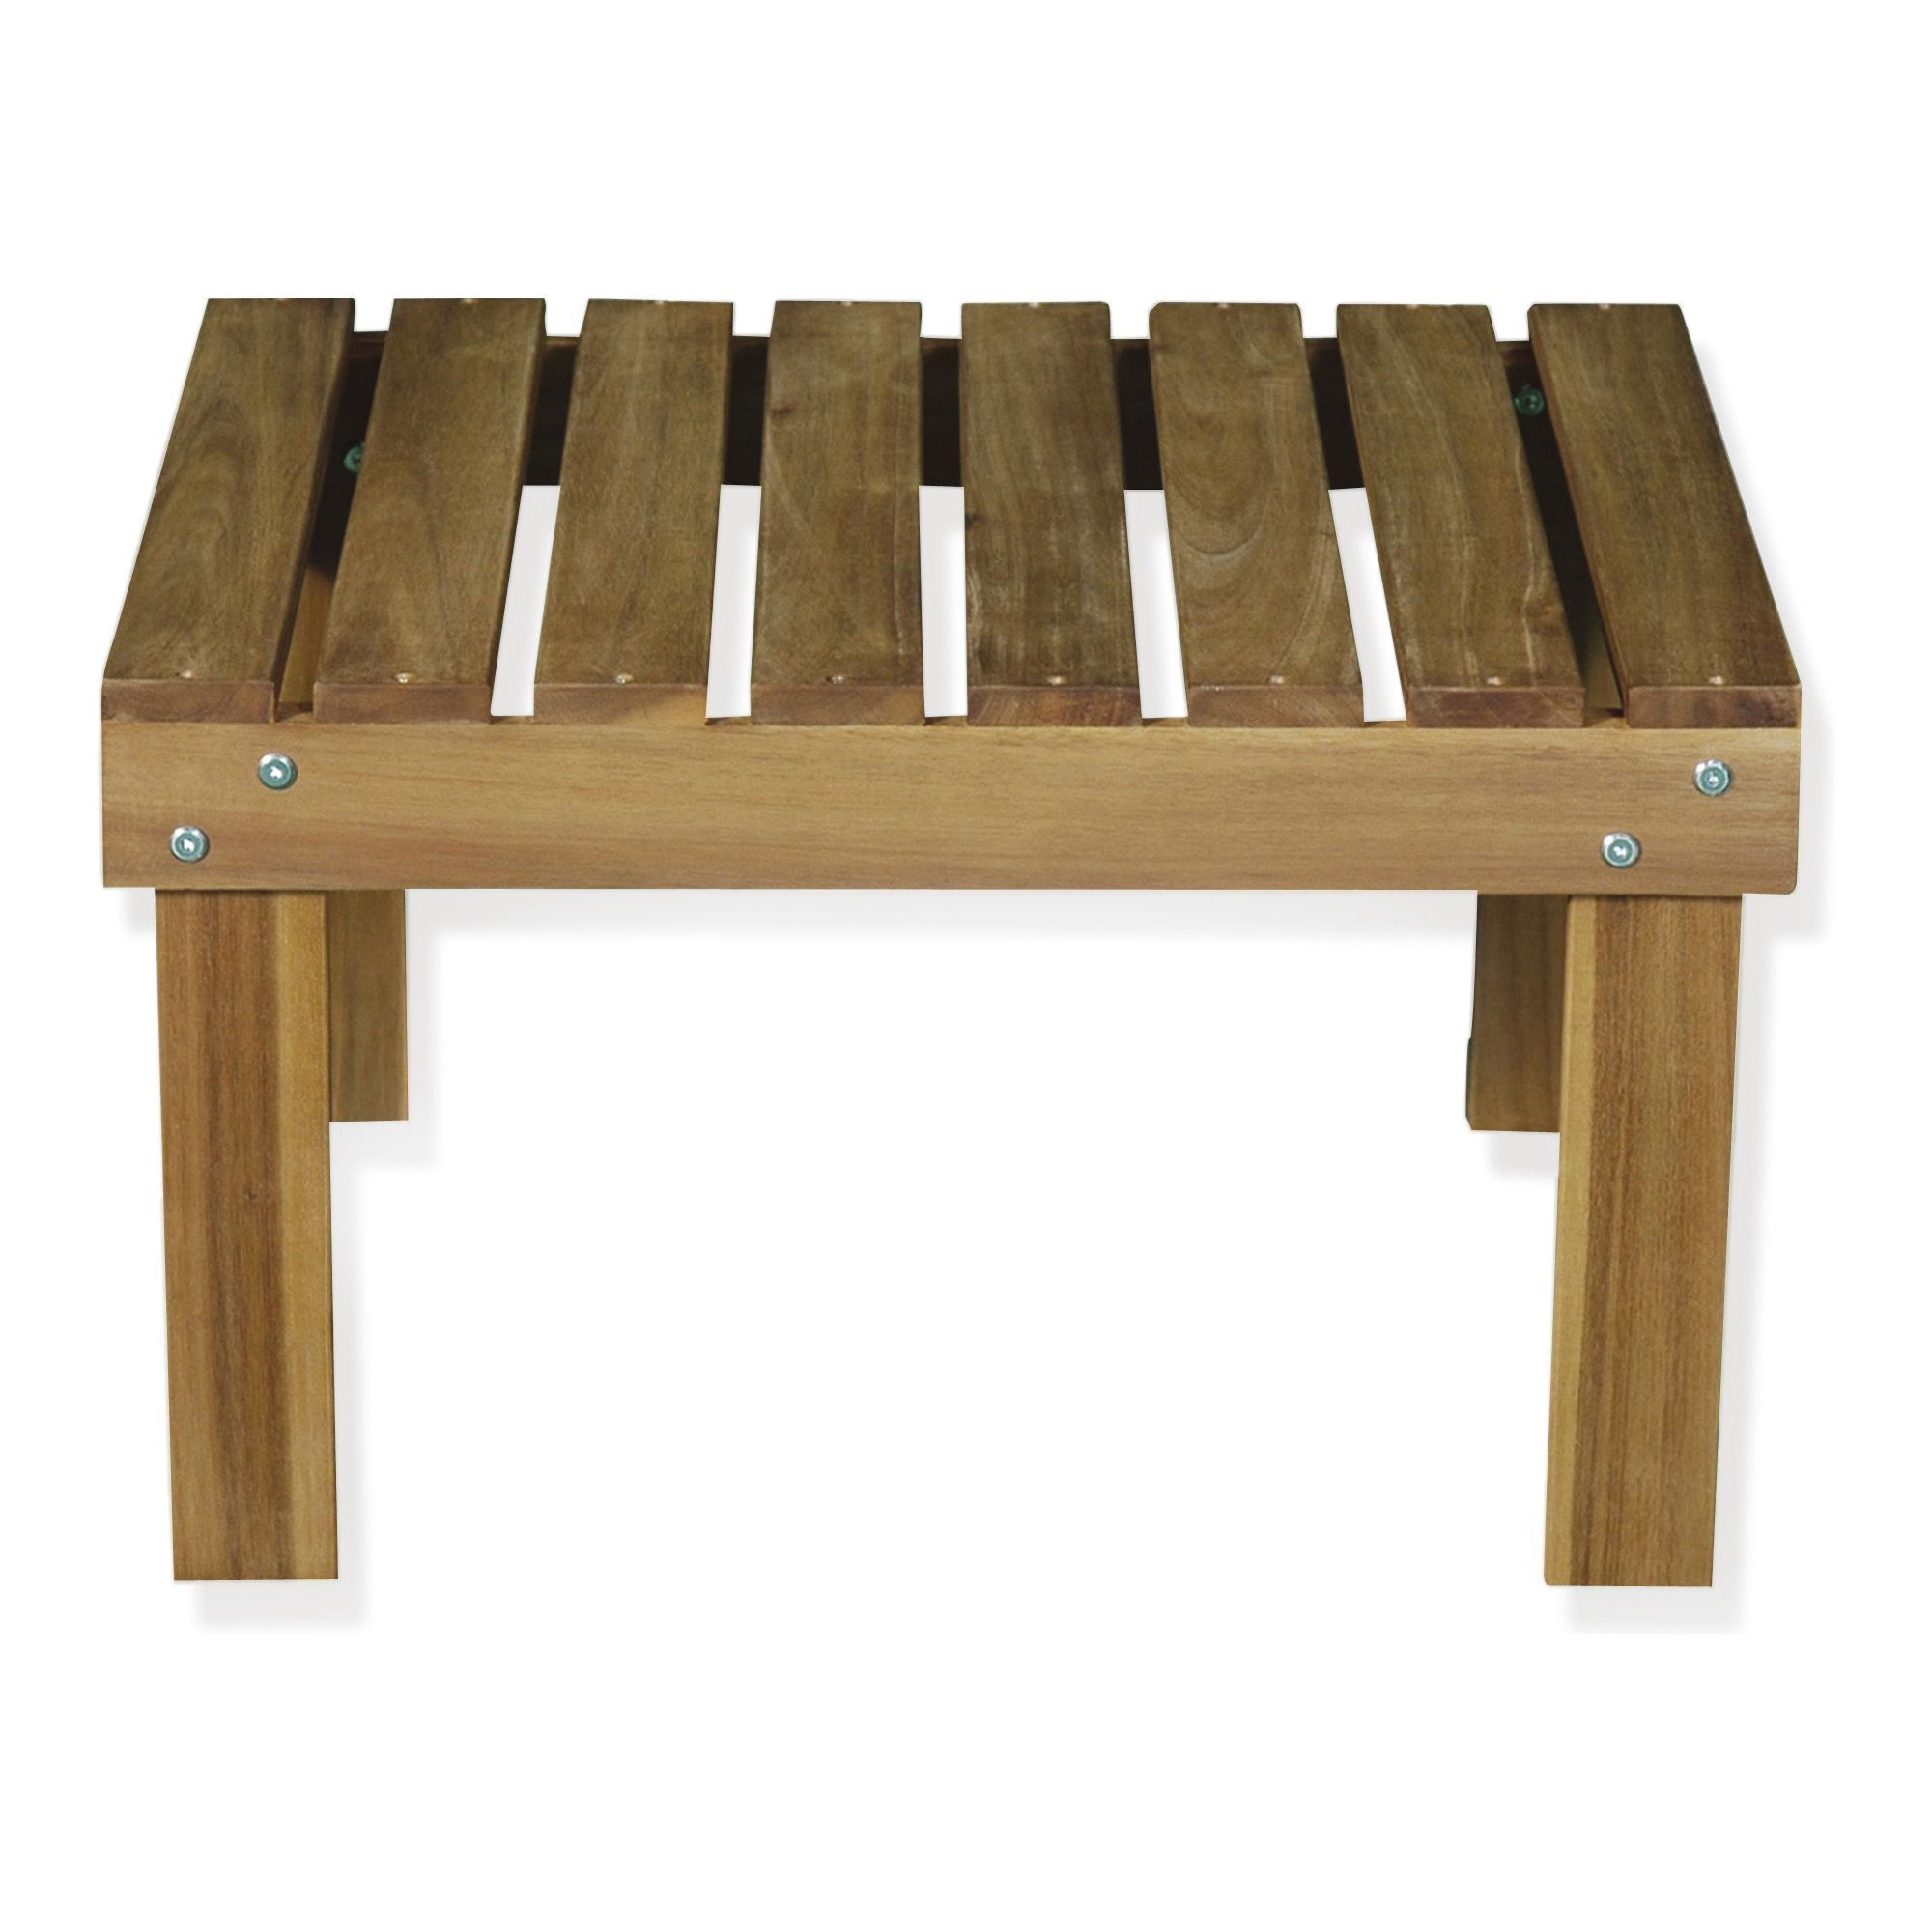 Table basse de jardin en acacia huilé - Bergonce - Tables basses de ...